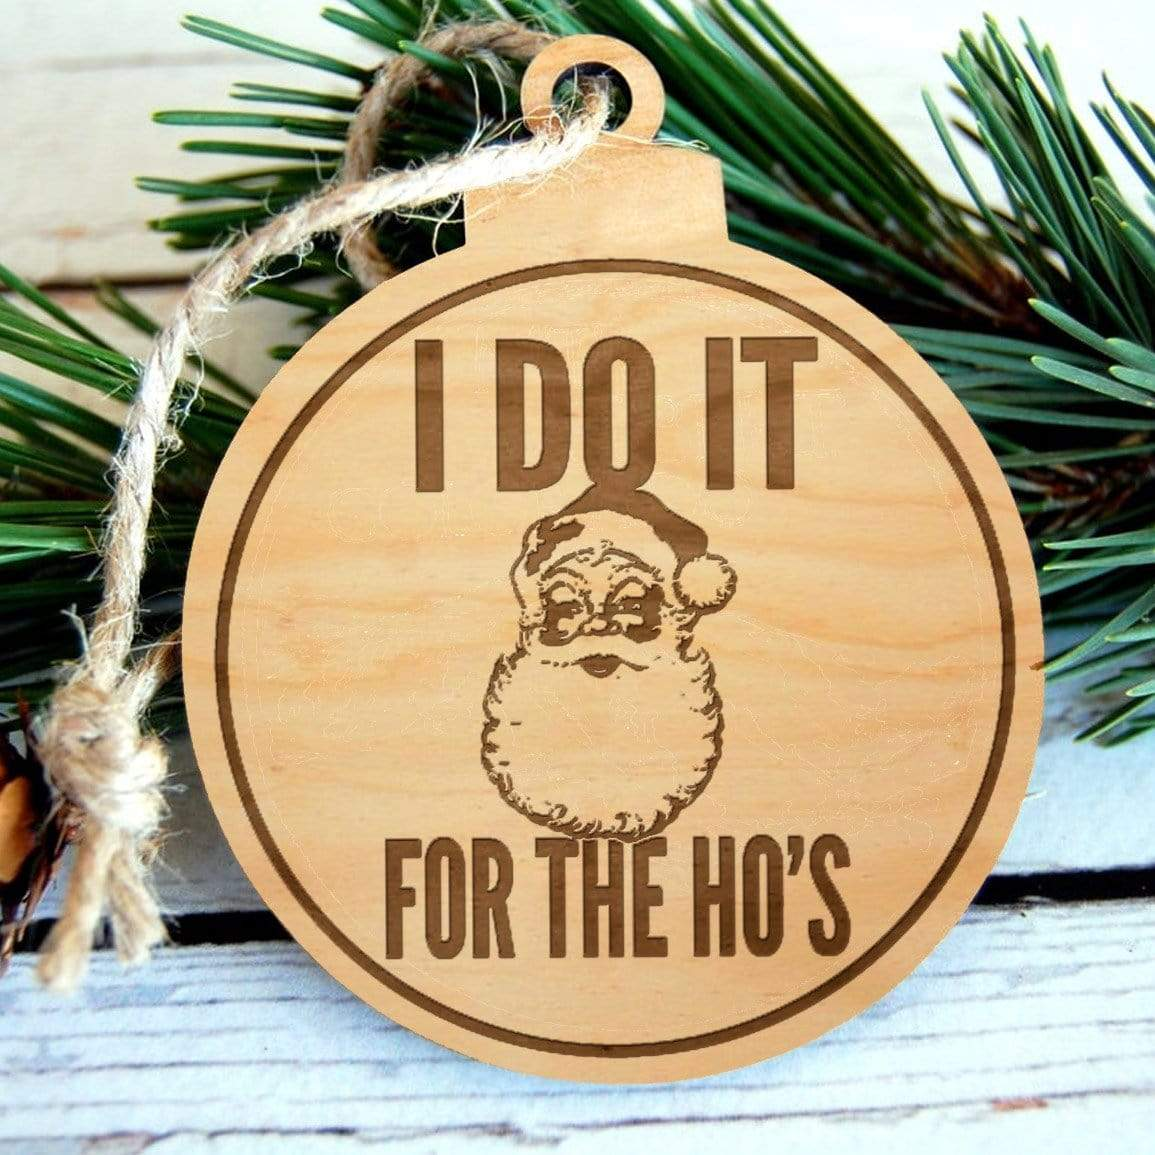 I Do It For The Ho's Laser Engraved Wooden Christmas Ornament